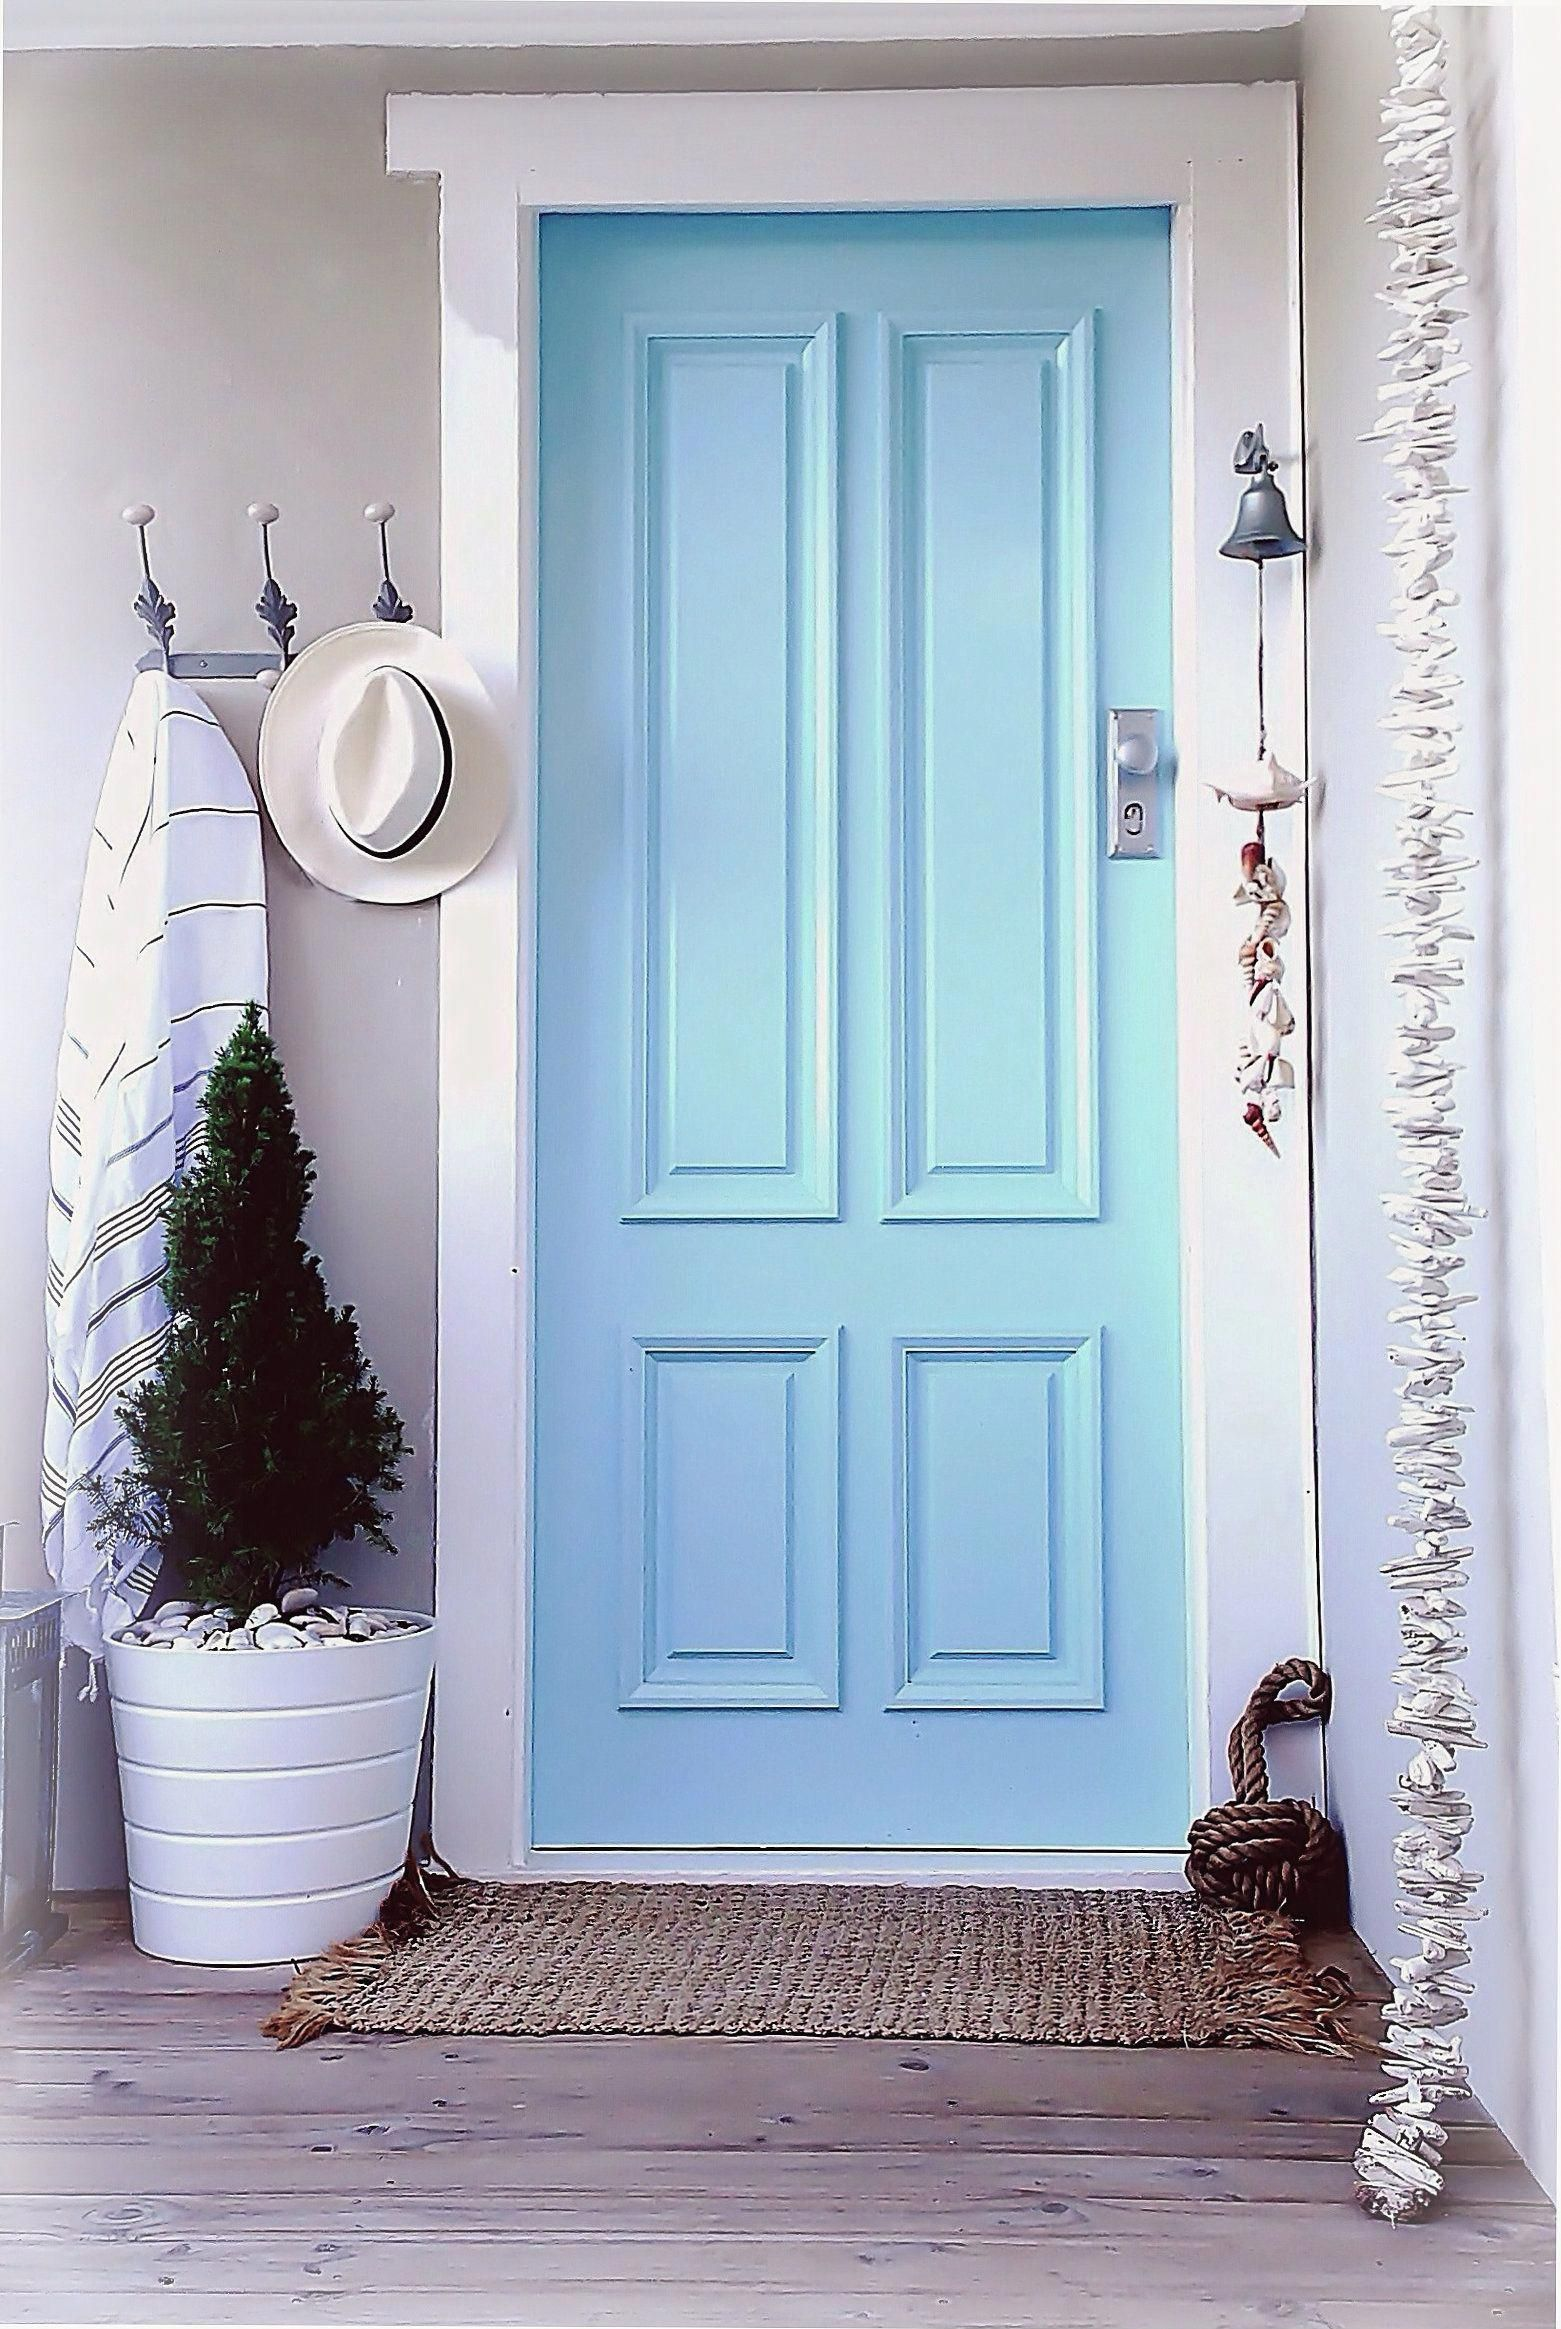 Decorating A Entrance Front Door For Coastal Nautical Beachy Vibe Casual Style Blue With Accents Abeachcottage